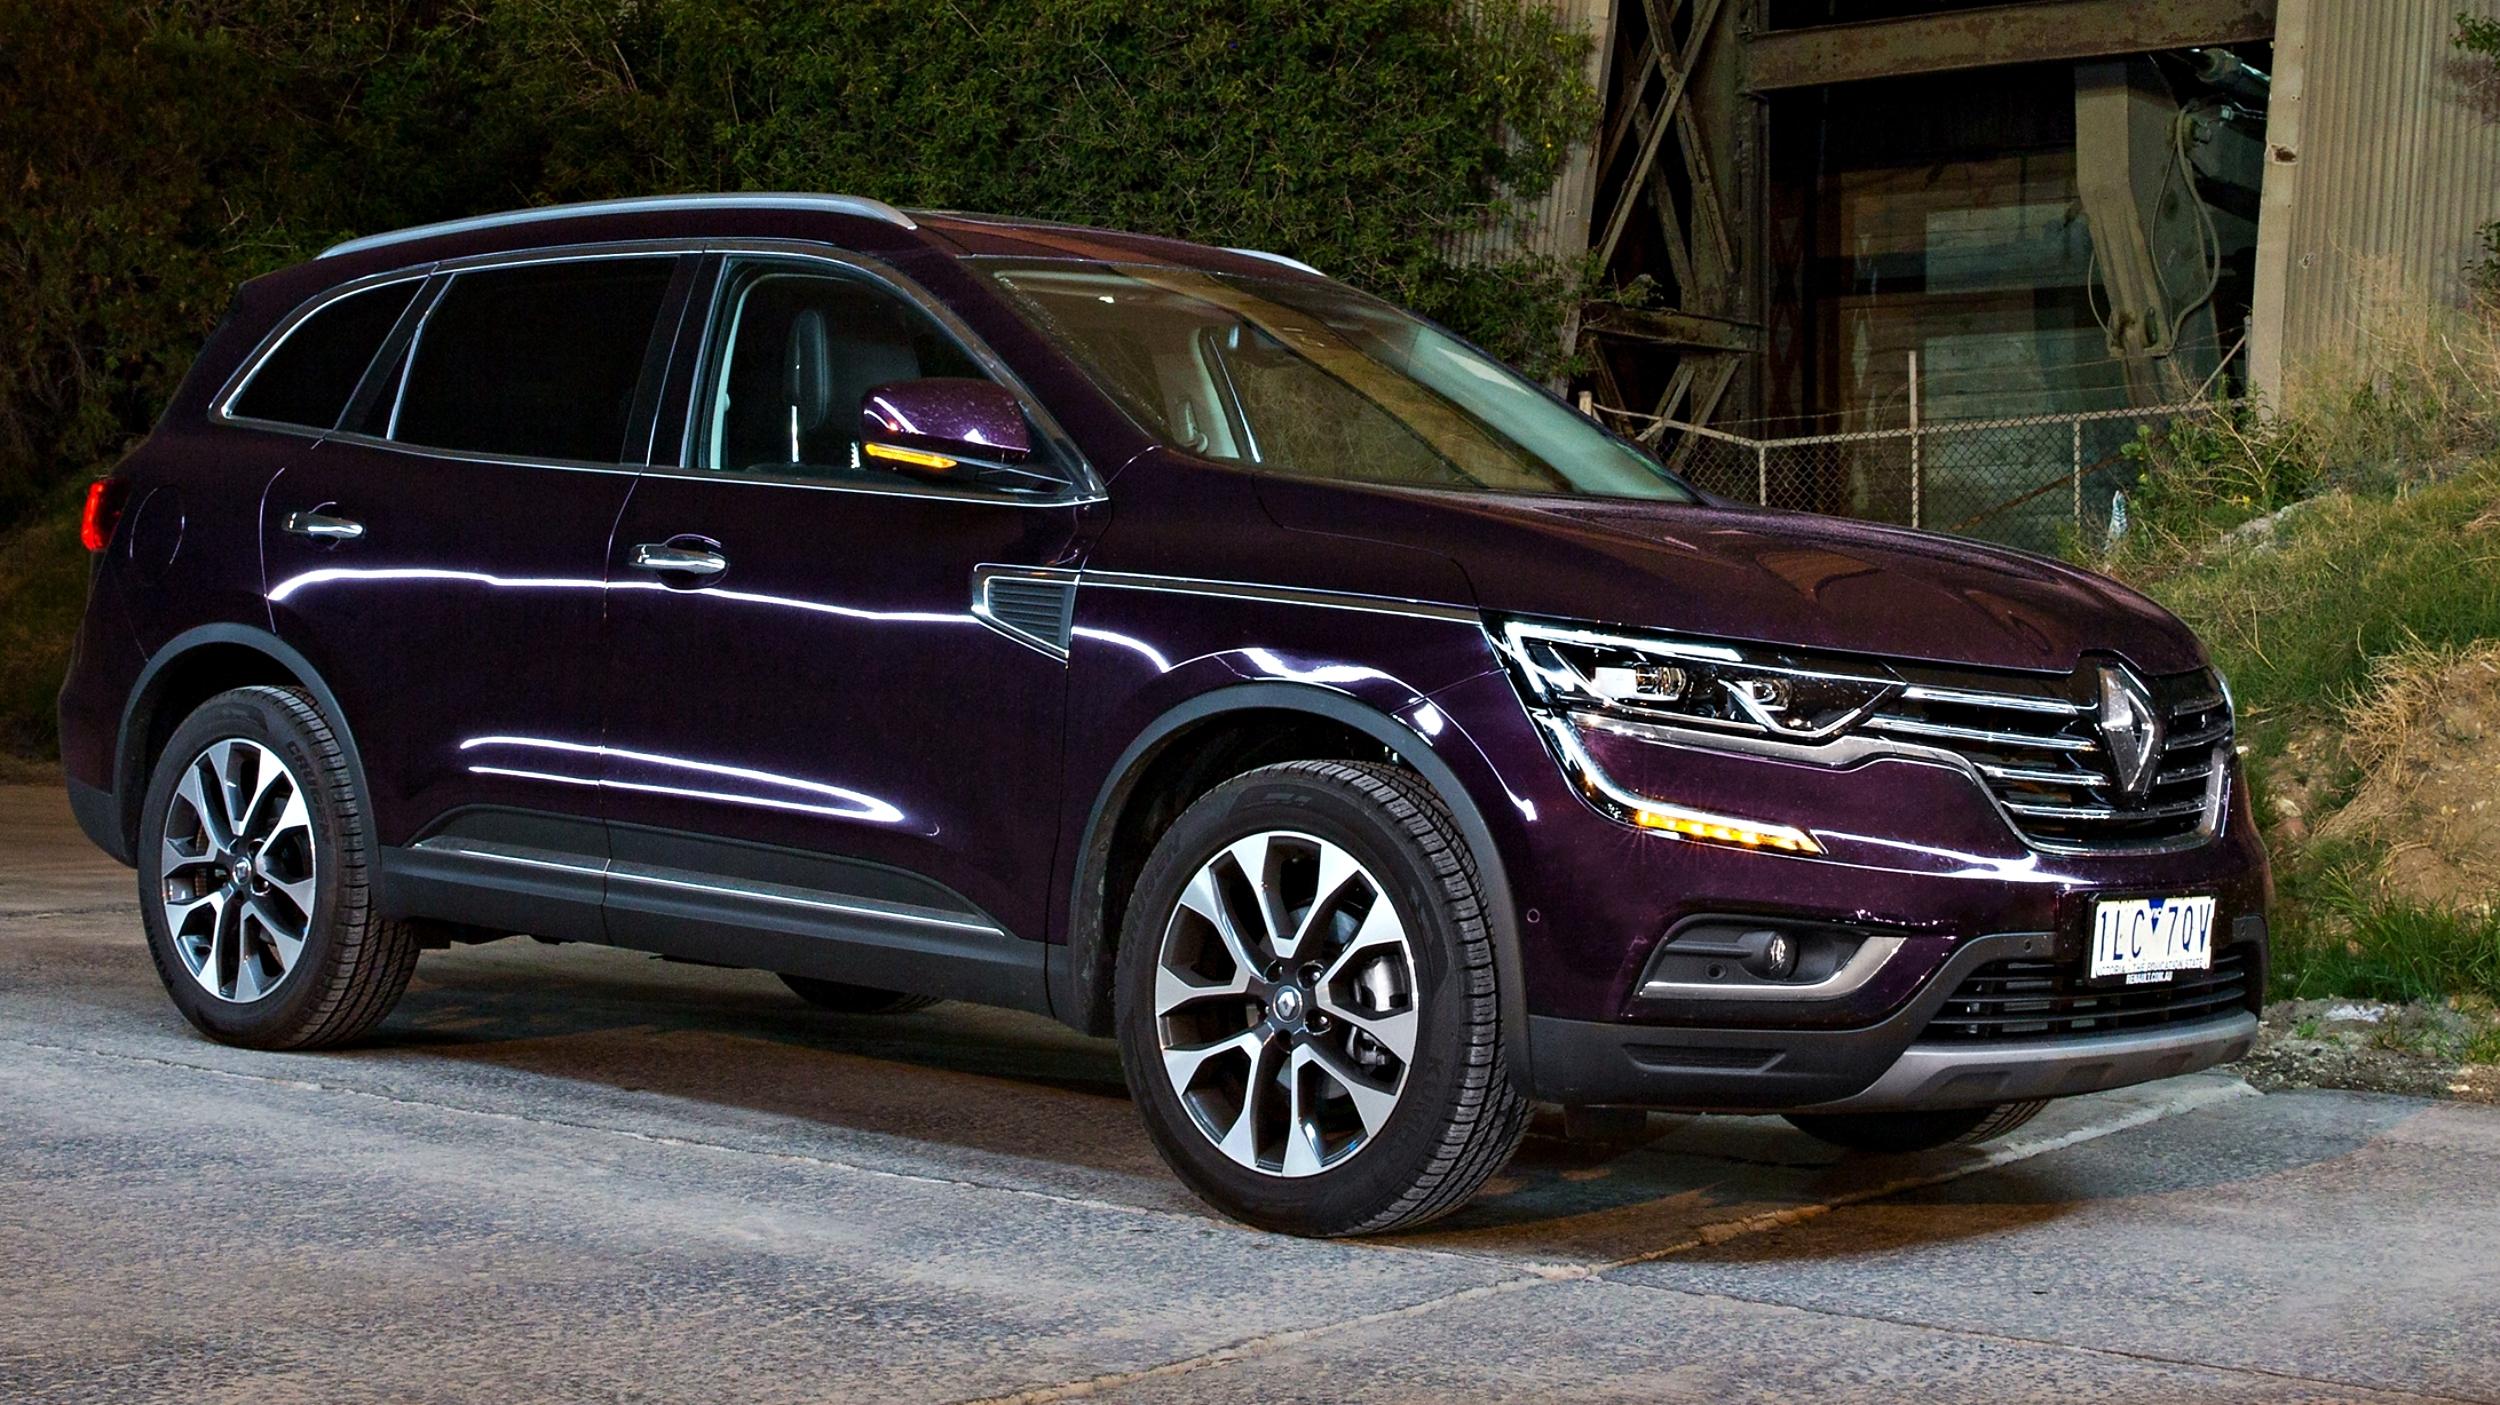 news 2018 renault koleos updated aeb apple carplay now standard. Black Bedroom Furniture Sets. Home Design Ideas